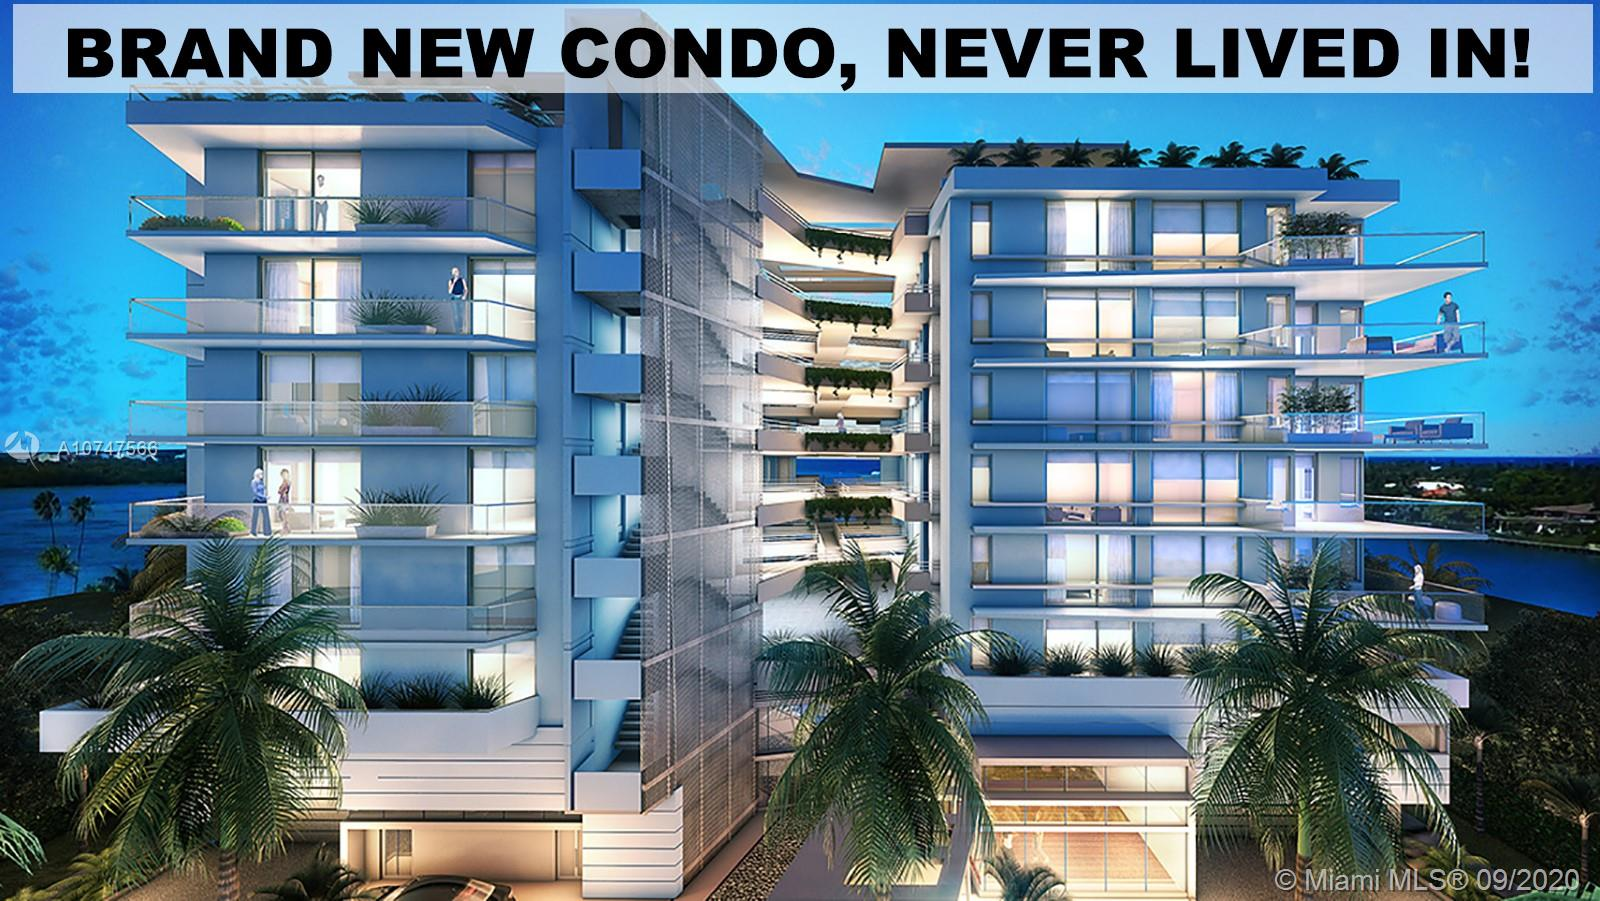 "BRAND NEW CONDO, NEVER LIVED IN! Large 2 beds +den (can be 3rd bdr),2 baths and a huge terrace with partial water view. 2 covered parking spaces + 1 storage cage. Complete Kitchen with top of the line appliances including wine cooler and washer/dryer. The Palms Condo is a boutique waterfront building with a rooftop pool deck, hot tub, rooftop BBQ/entertainment area with amazing views. Located in Bay Harbor Islands, one of Miami's most desirable locations. Walk to ""A"" rated Ruth K. school (K-8), just minutes to the world-famous Bal Harbour Shops and the sandy beaches of Bal Harbour and Surfside.  The island is perfect for families; playgrounds throughout the island, tennis courts, bicycle paths, citibike rental adjacent to bldg. A one of a kind property in a one of a kind neighborhood."